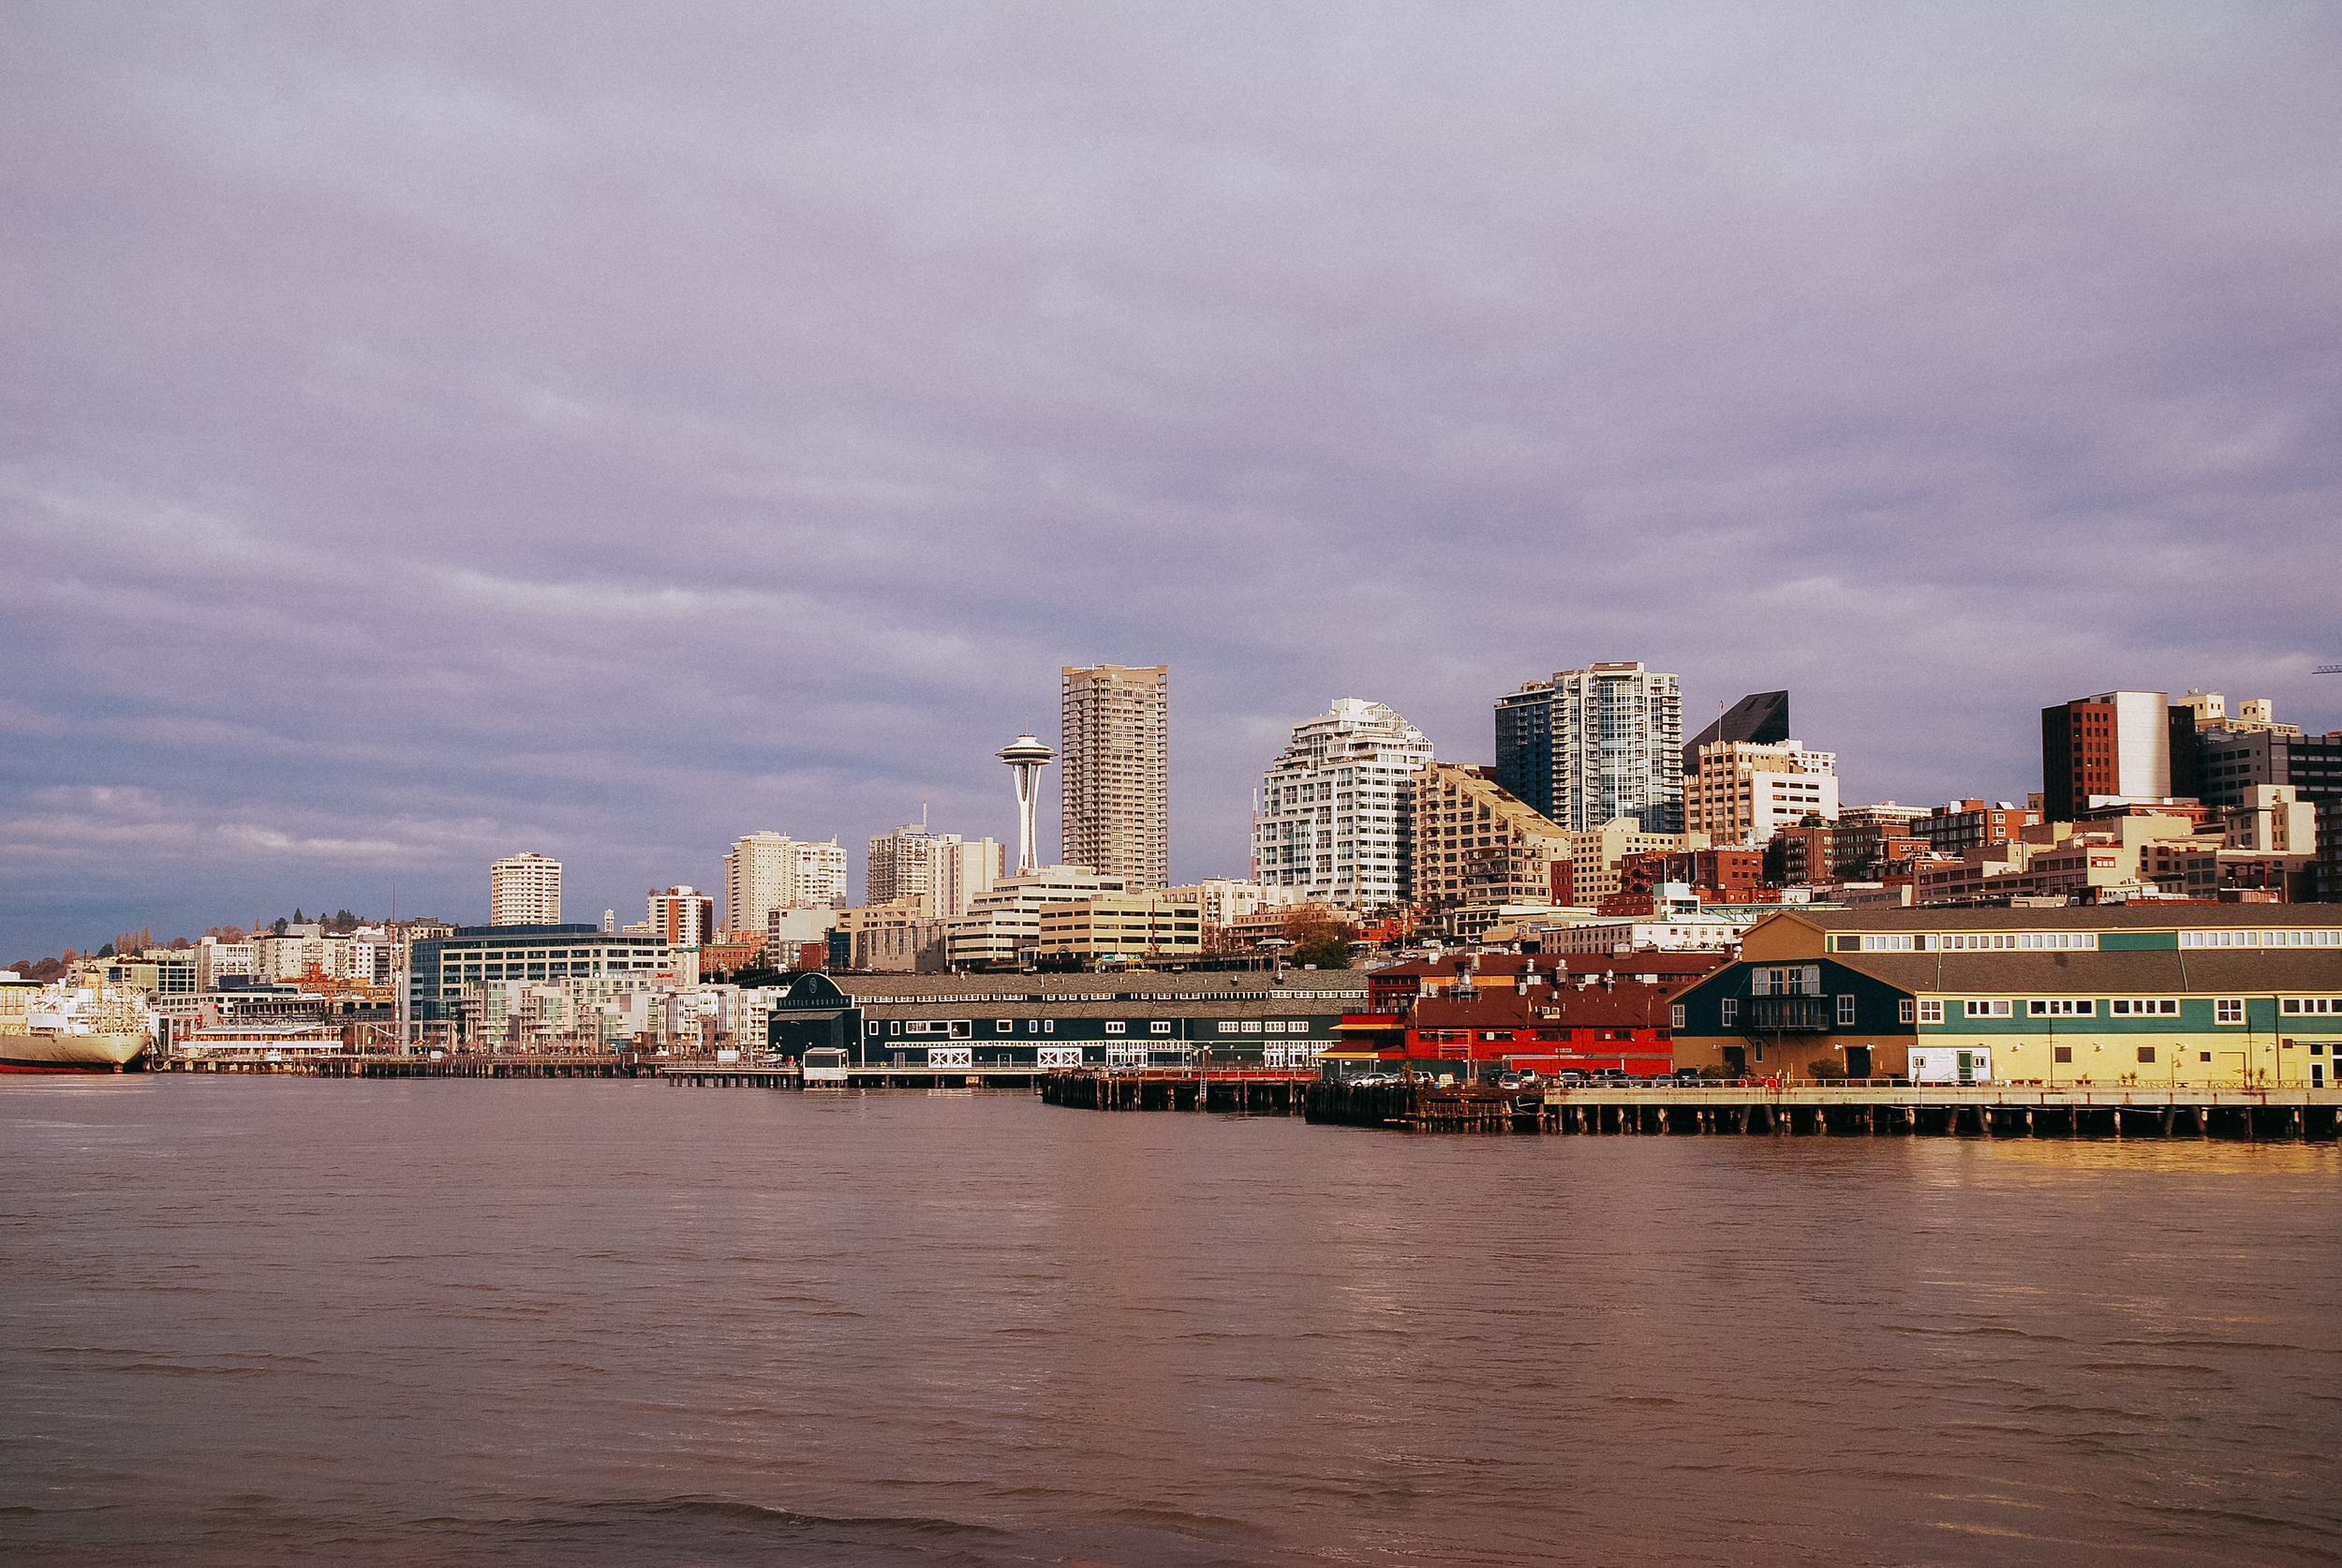 A photo from my first Seattle visit, November 2008